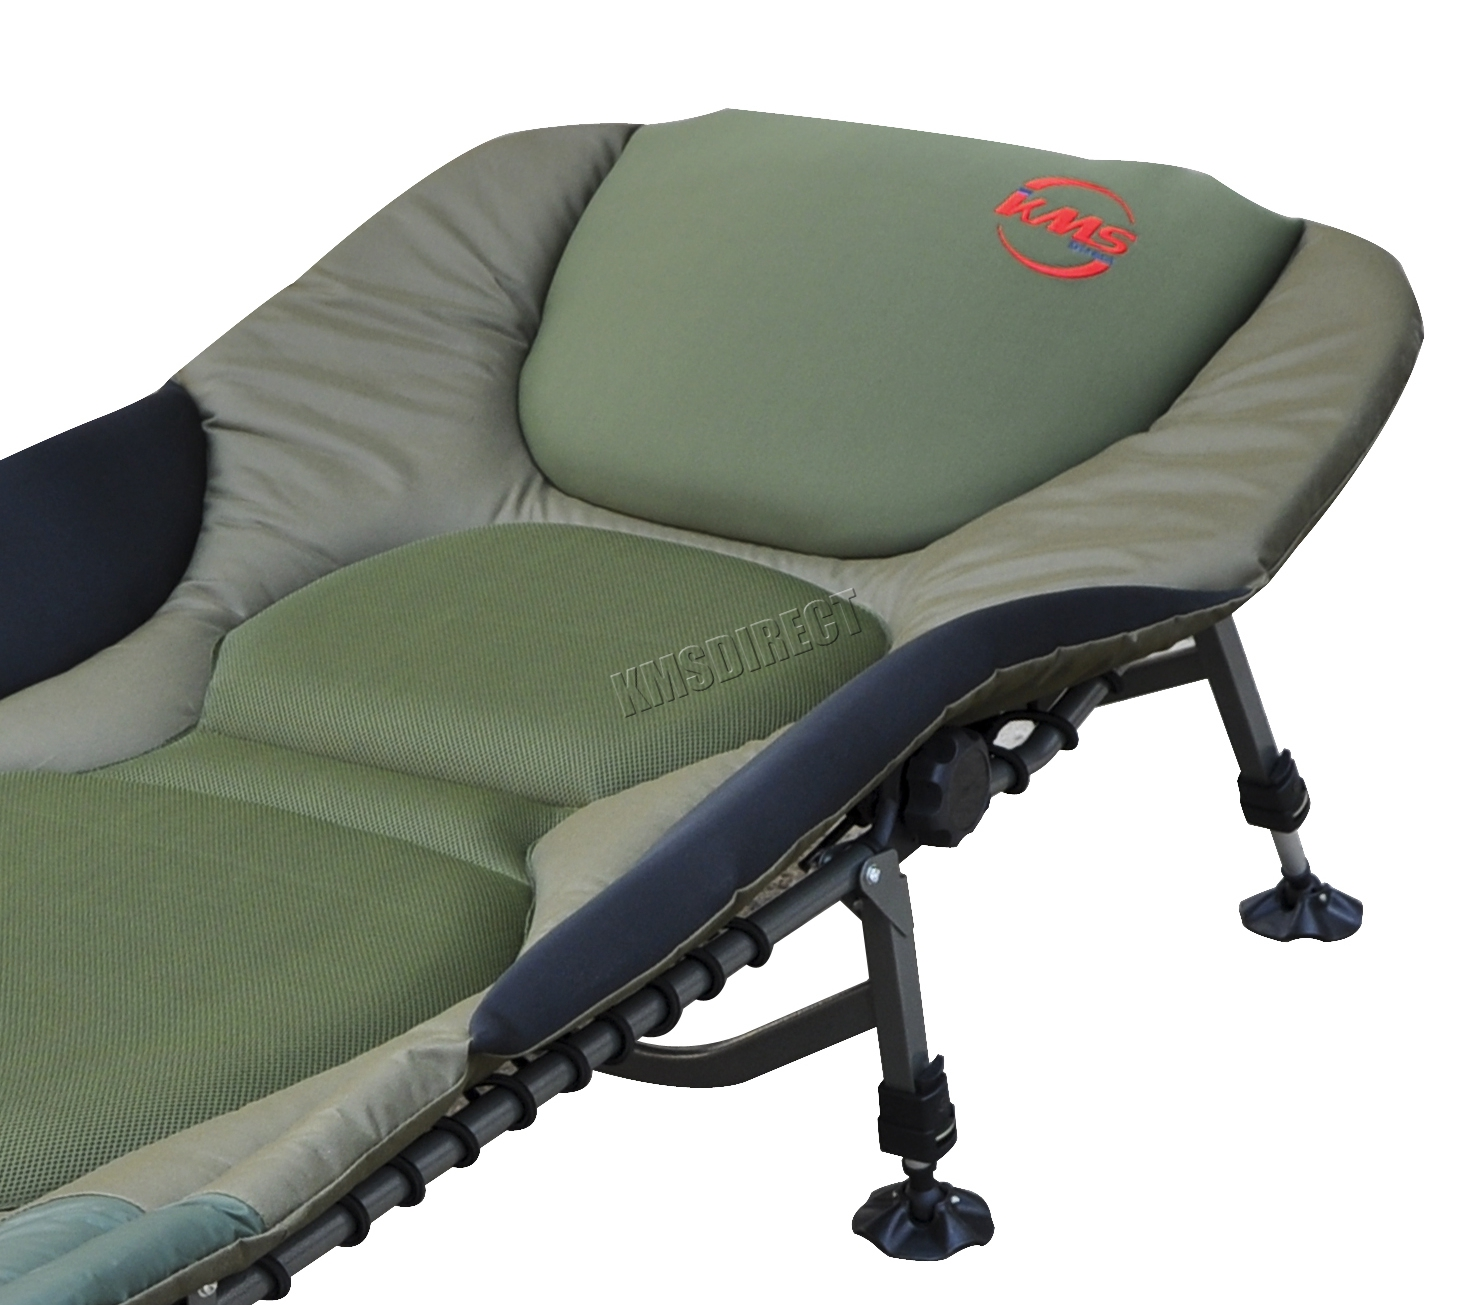 Portable Carp Fishing Bed Chair Bedchair Camping 8